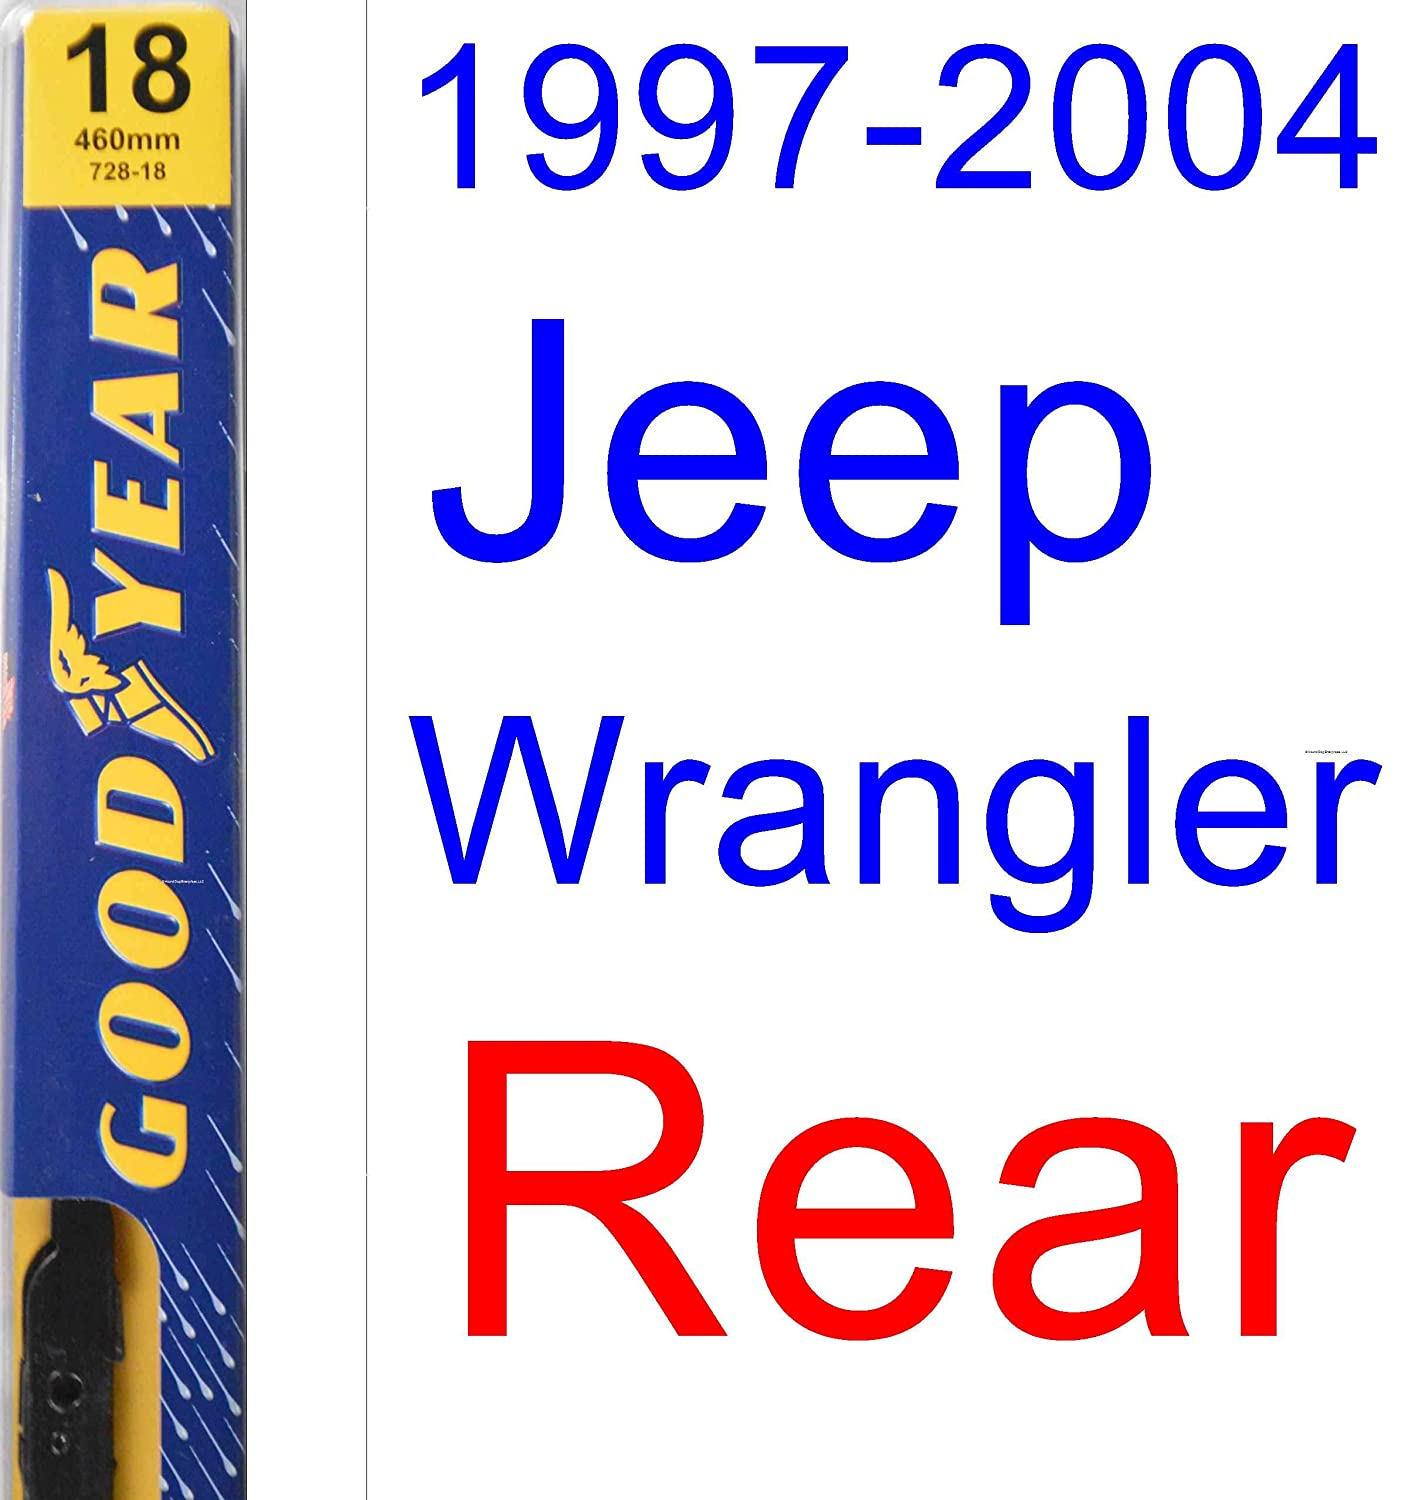 1997 2004 Jeep Wrangler Replacement Wiper Blade Set Kit 2003 Liberty Wiring Of 3 Blades Goodyear Premium 199819992000200120022003